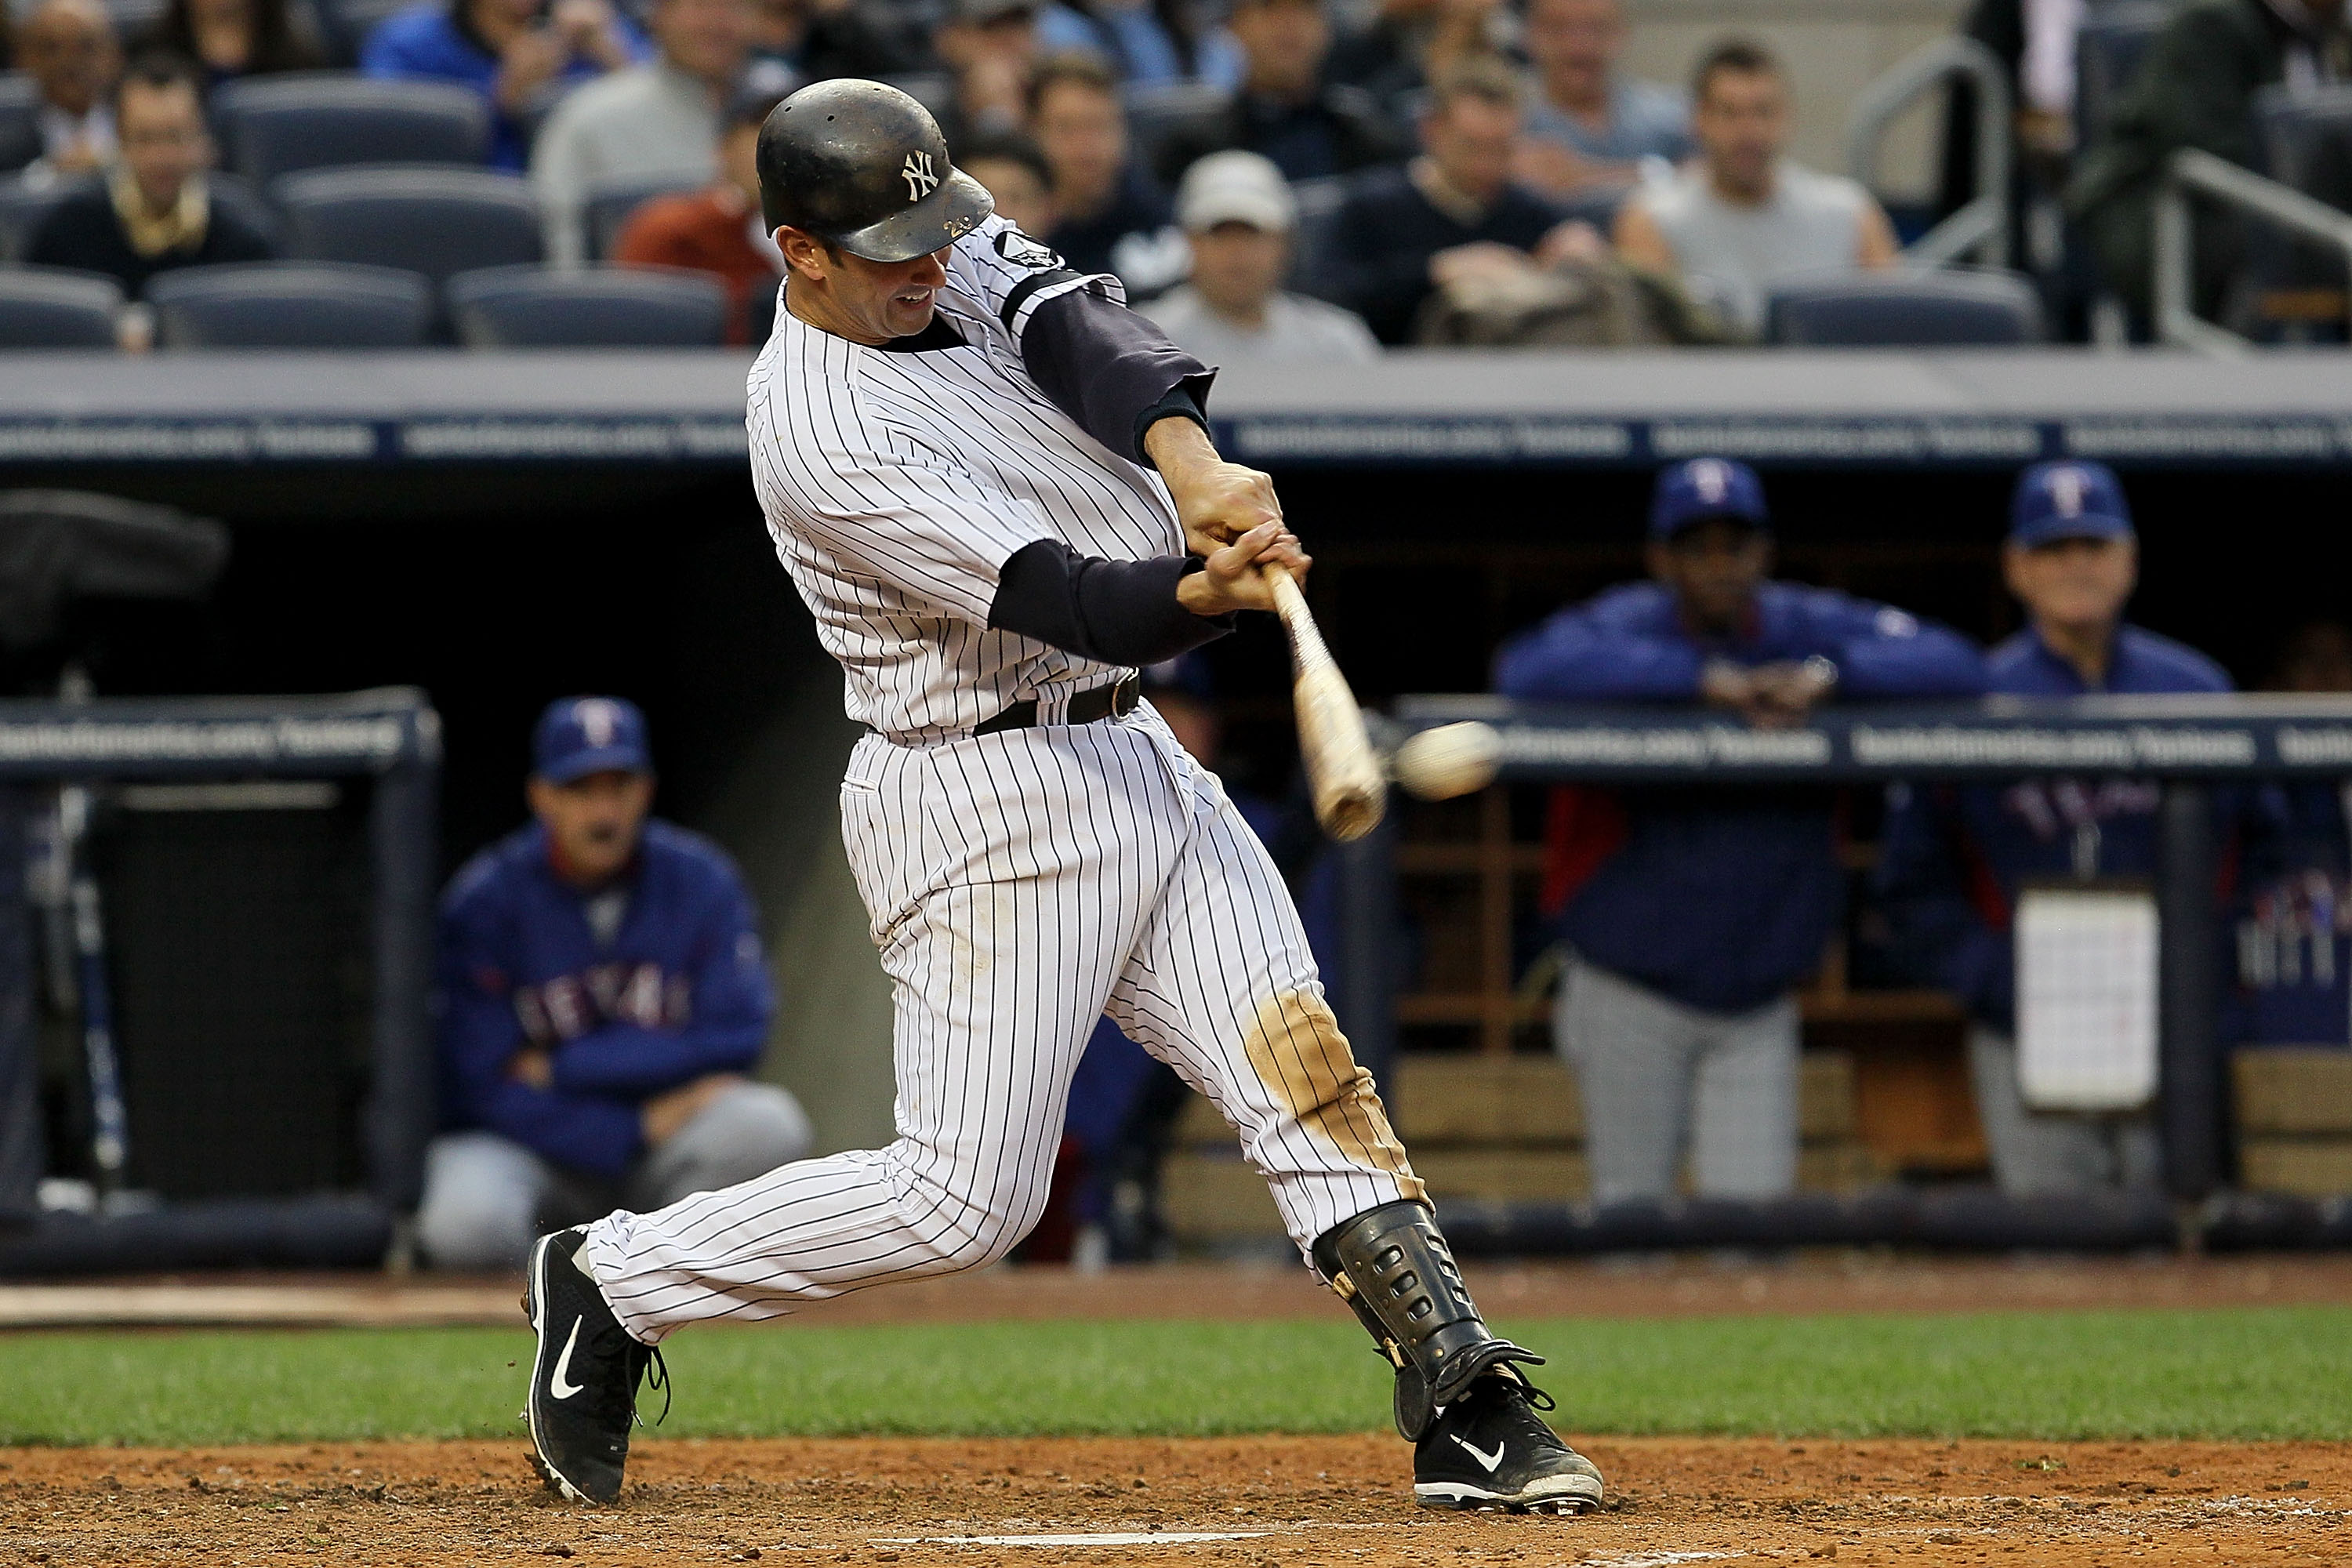 Jorge Posada hasn't broken down yet, but if he does, Travis Hafner could fill in for him.